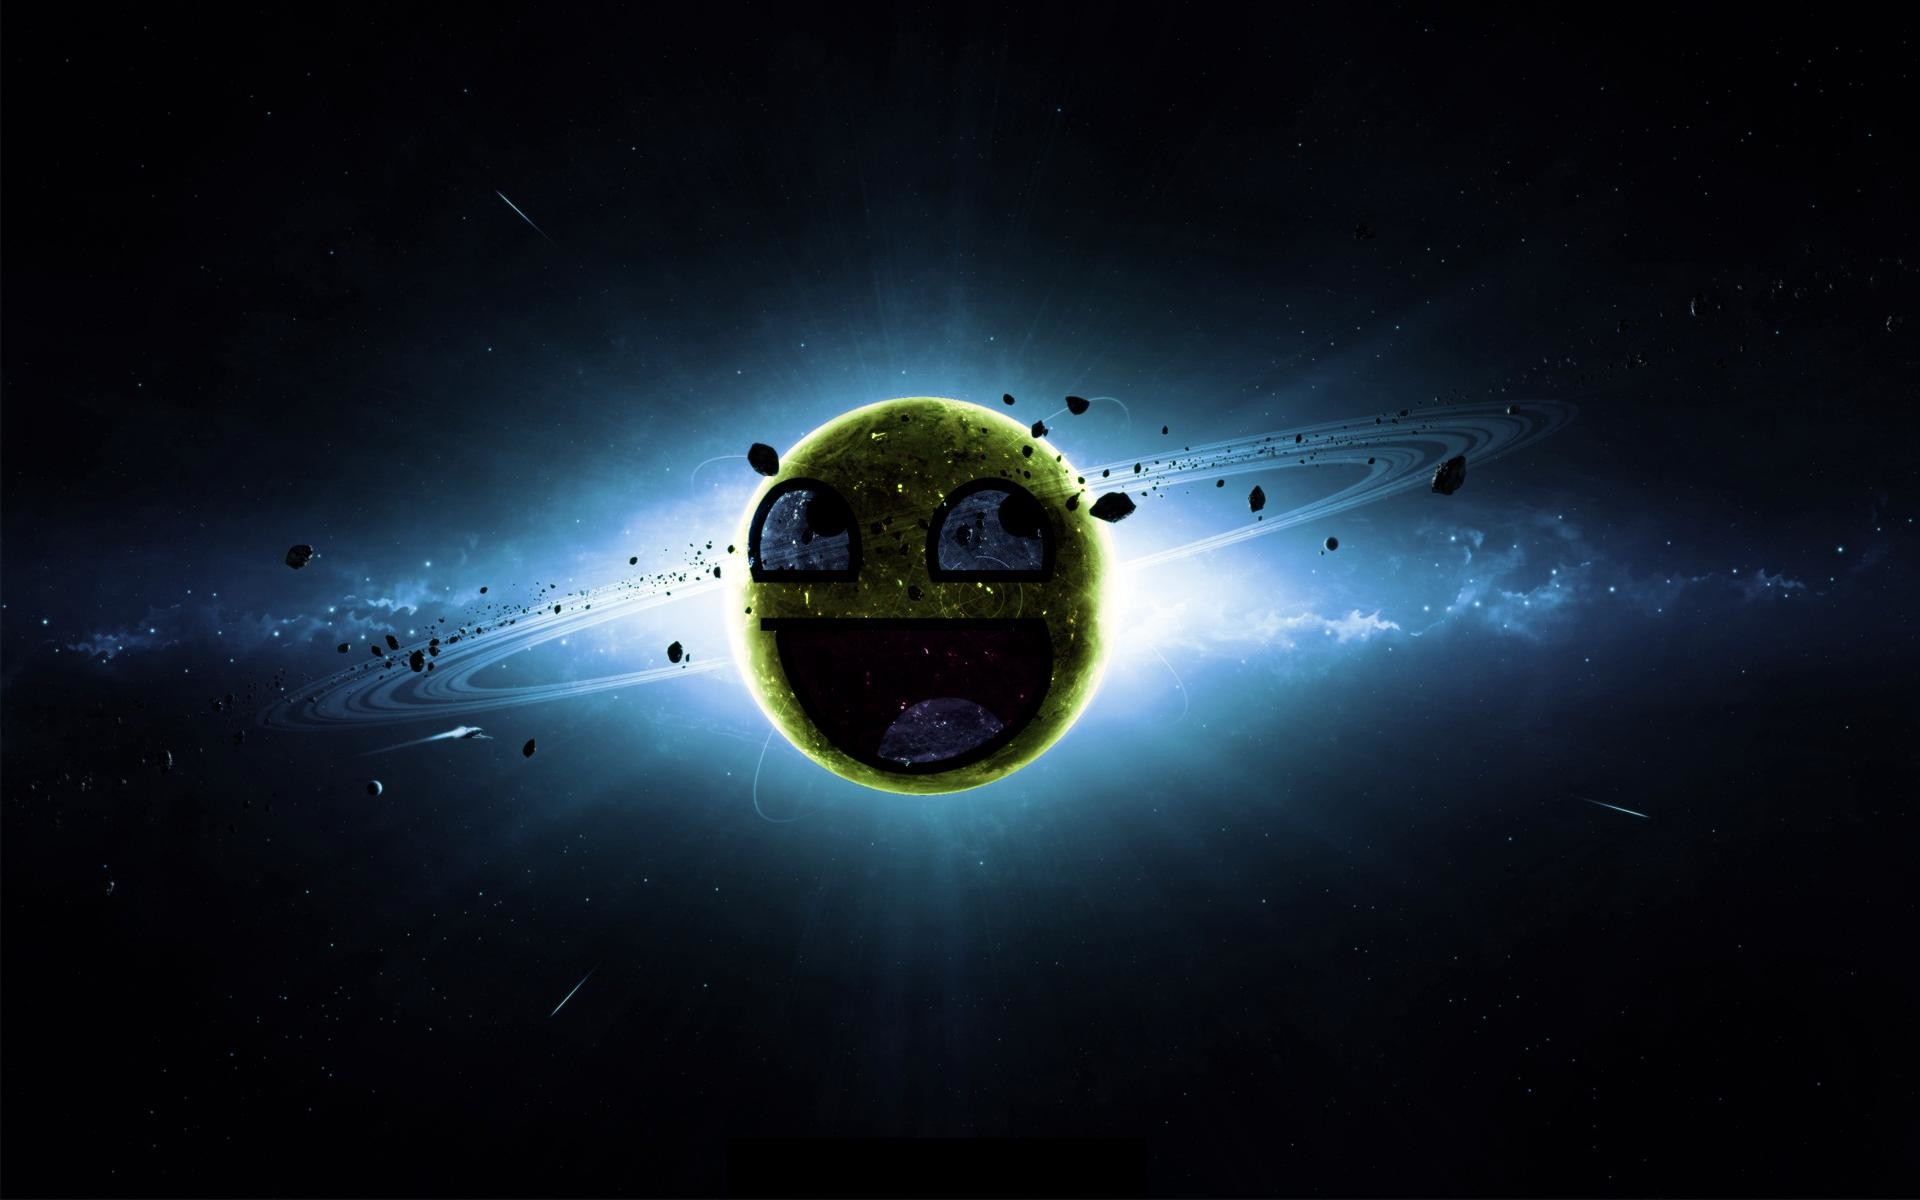 1920x1200 Epic Face Wallpaper HD - WallpaperSafari Awesome Face Space Wallpaper by  I-AM-RESISTY on DeviantArt ...